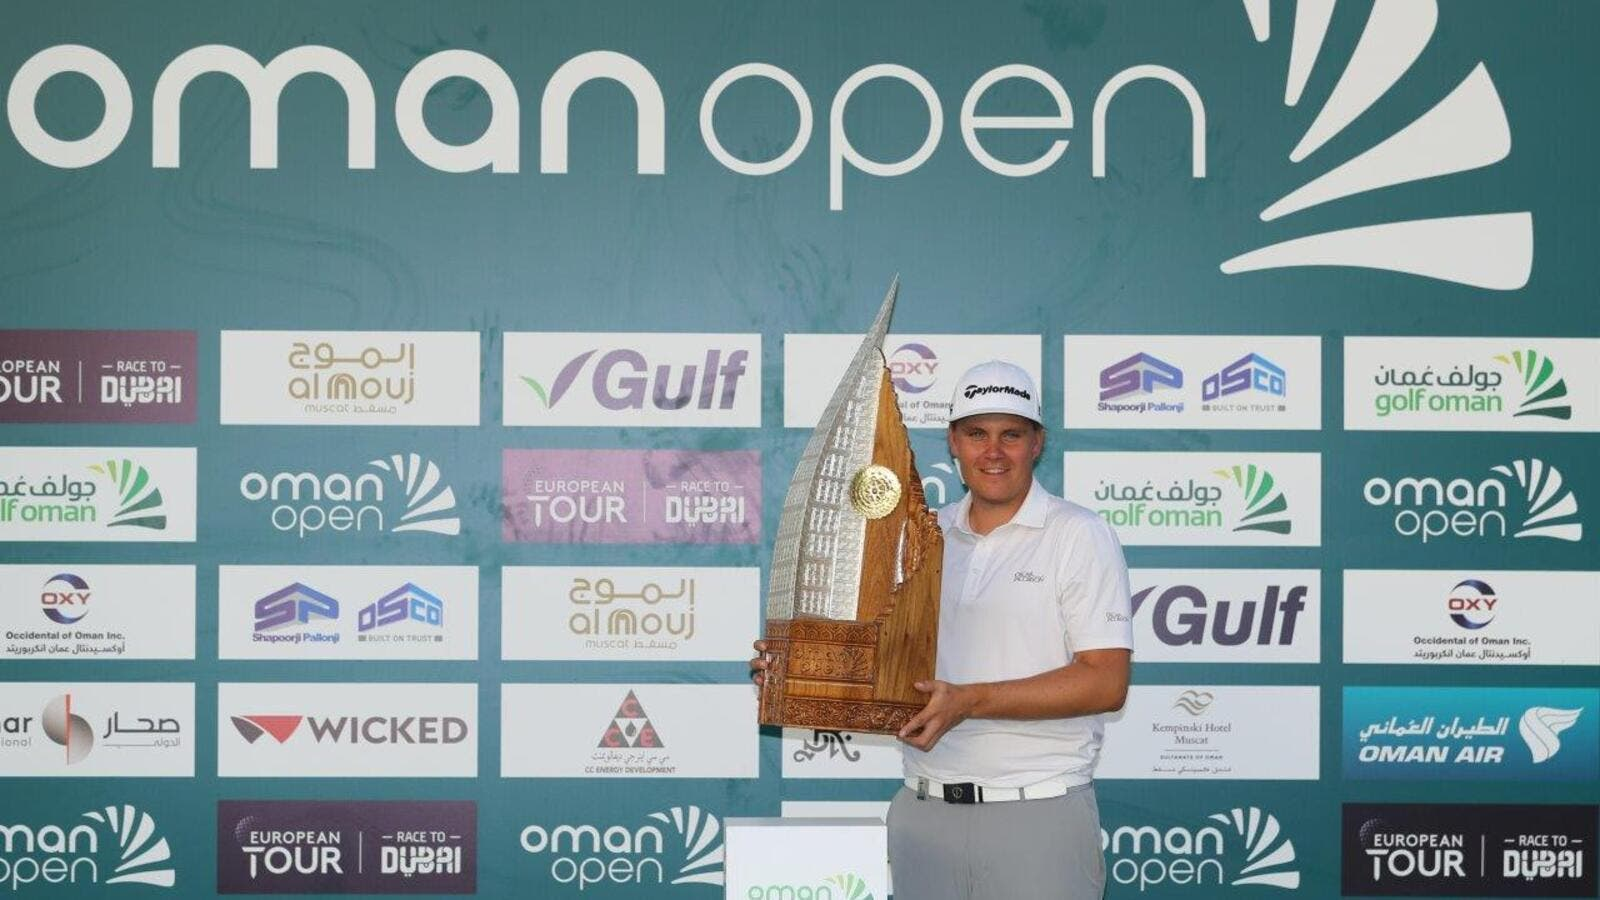 Finnish rookie Valimaki clinches Oman Open